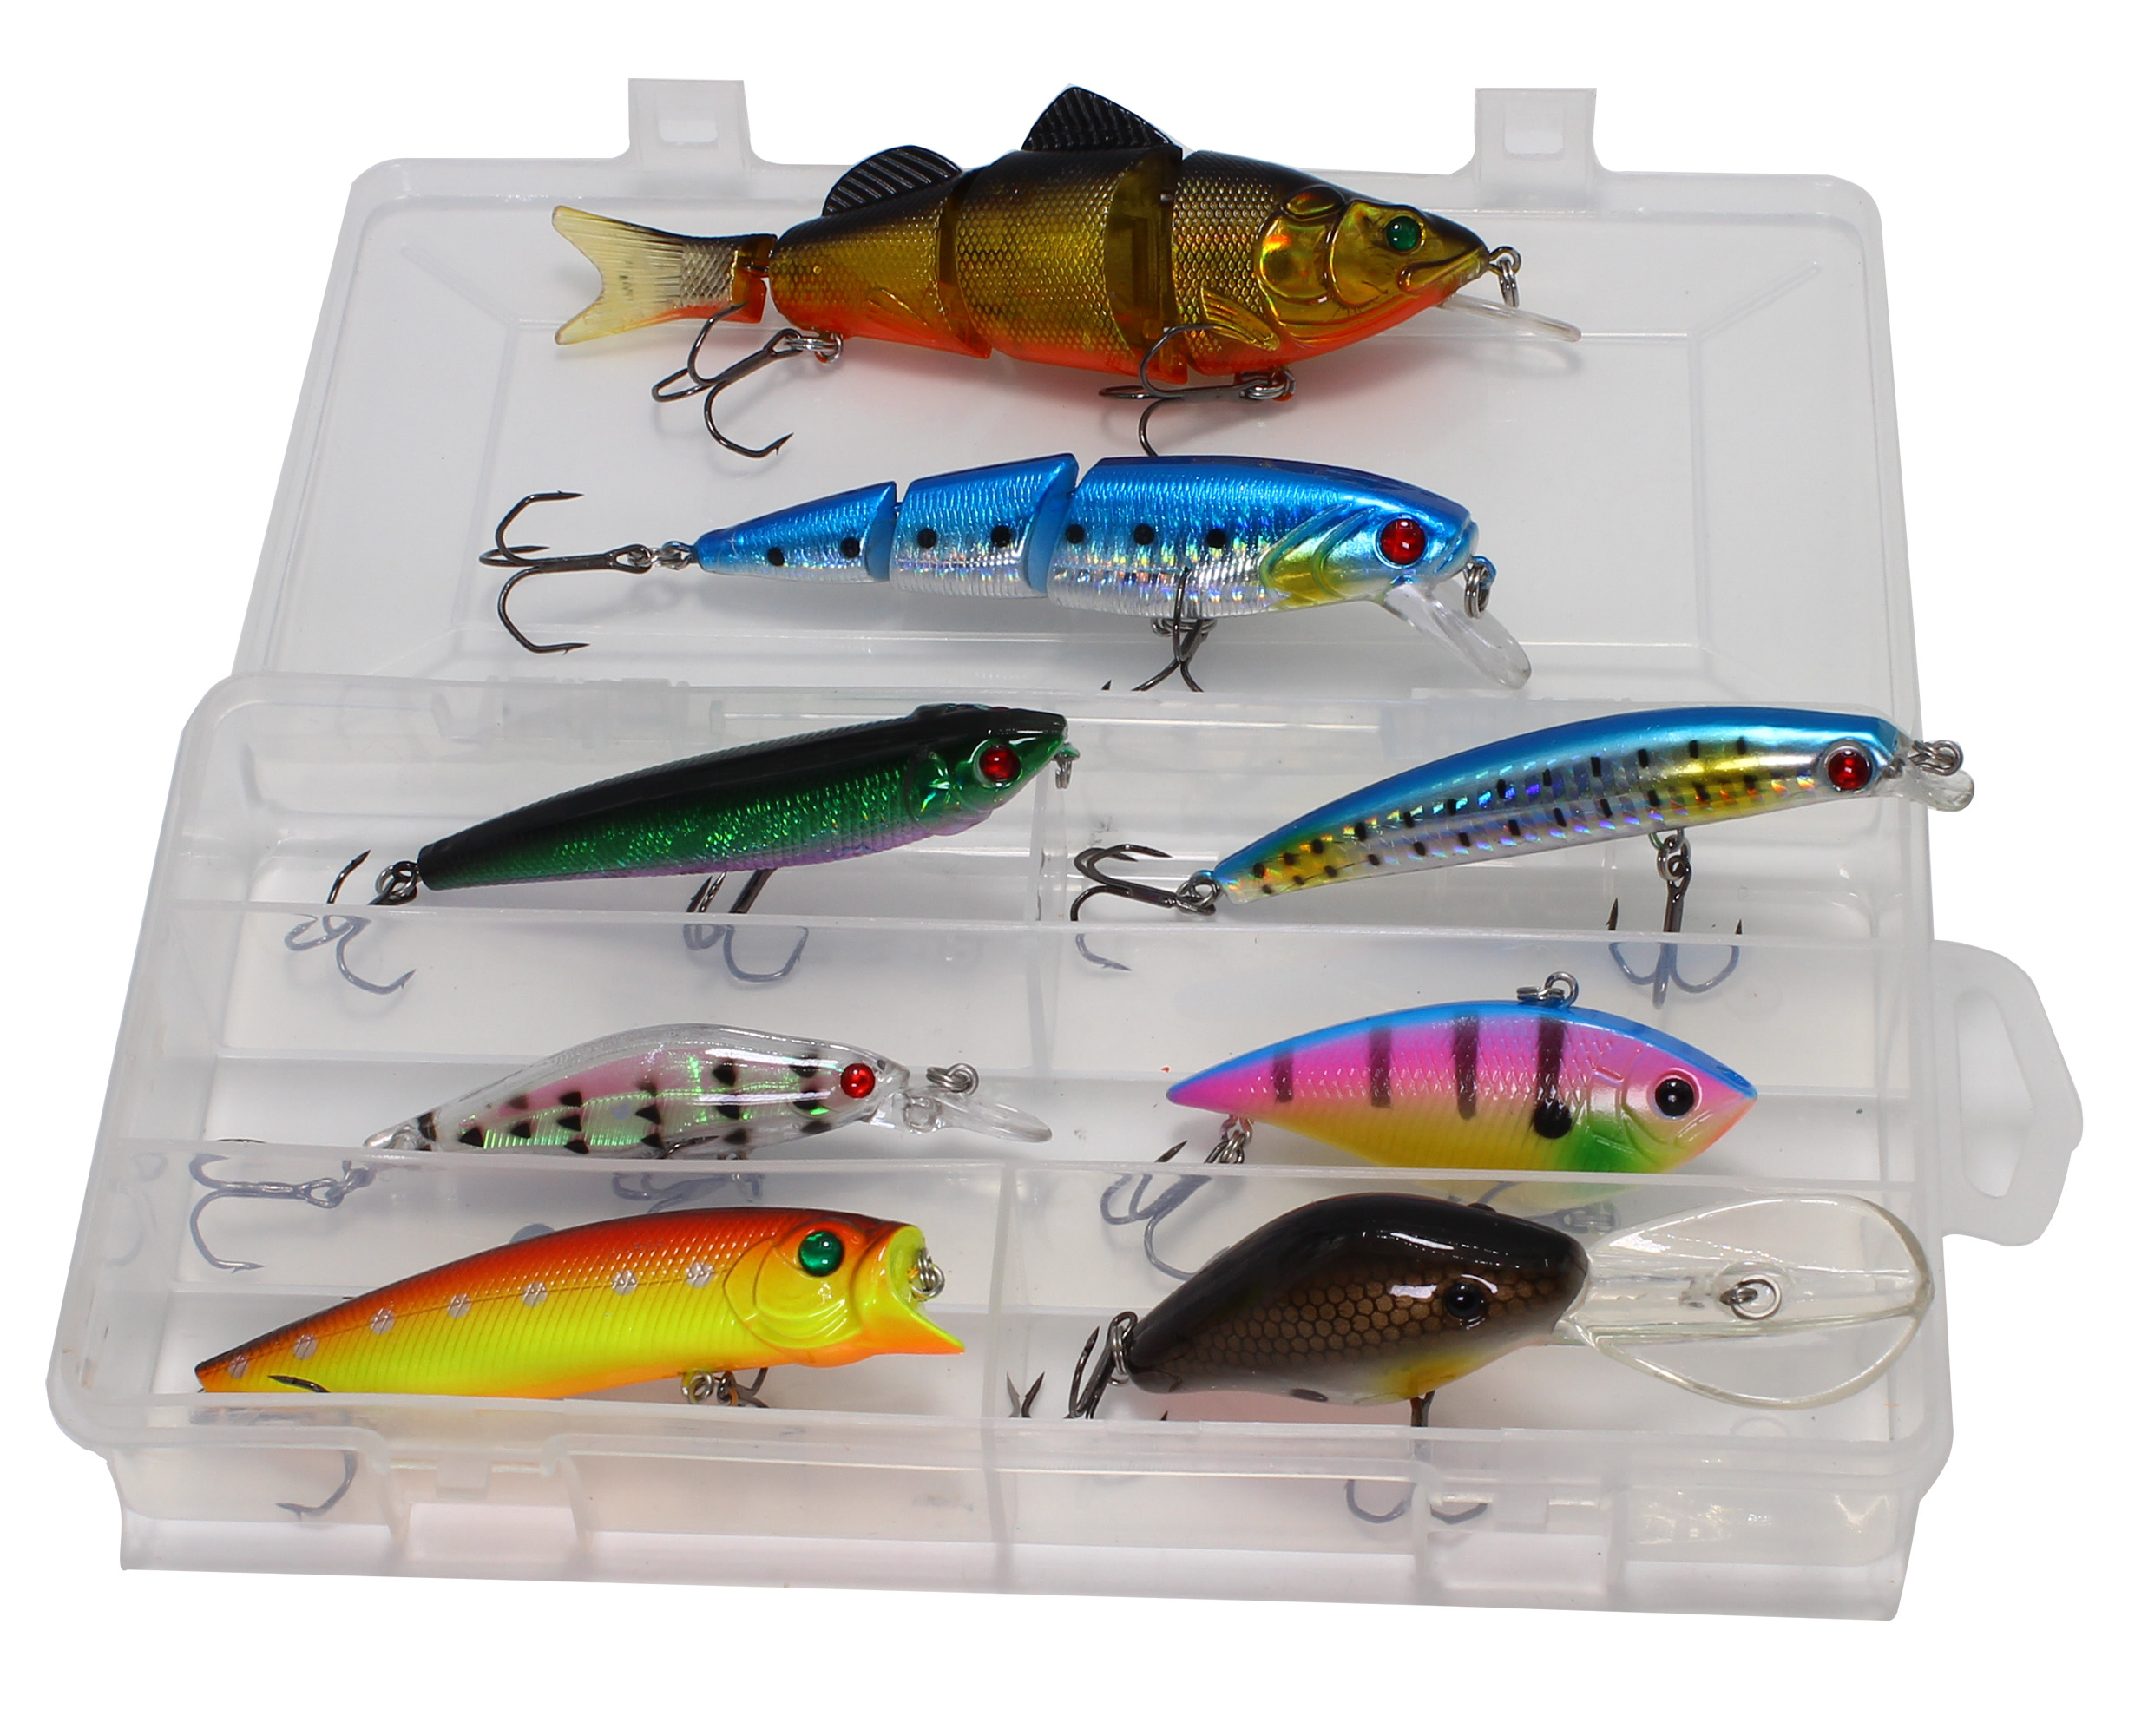 Click here to buy LotFancy 8 PCS Fishing Lures and Storage Case, Spinner Baits Crankbait Assorted Fish Tackle Hooks, 3.35 to 5.5 Inches.